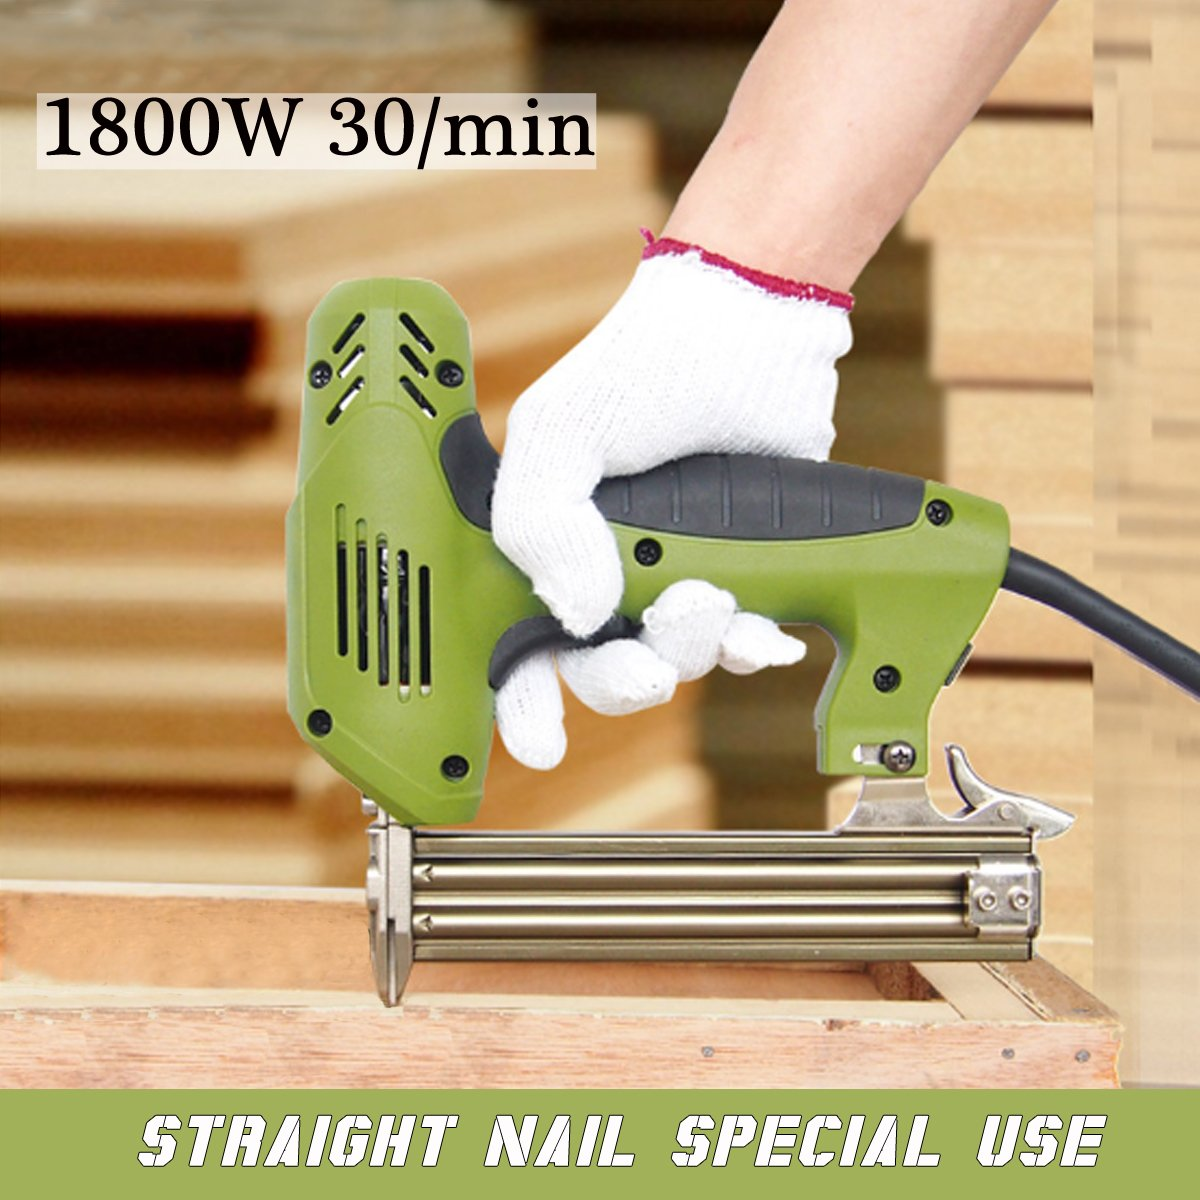 220V 1800W Electric Staple Straight Nail Gun 10-30mm Special Use 30/min Woodworking Tool by SPK603